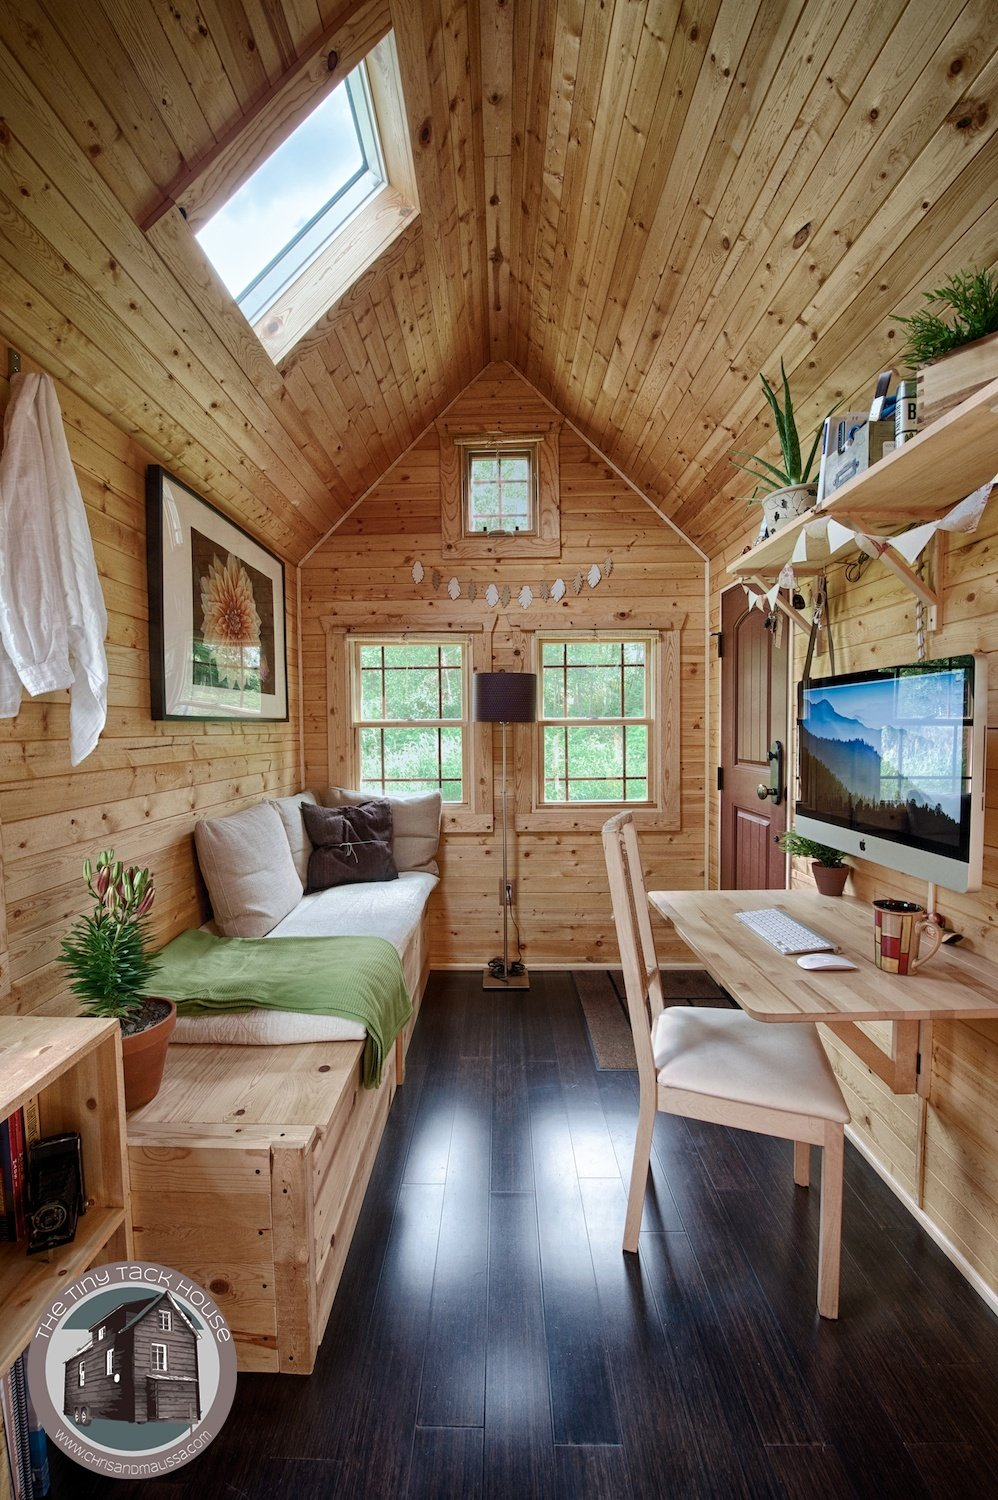 16 tiny houses you wish you could live in for Interior house design pictures